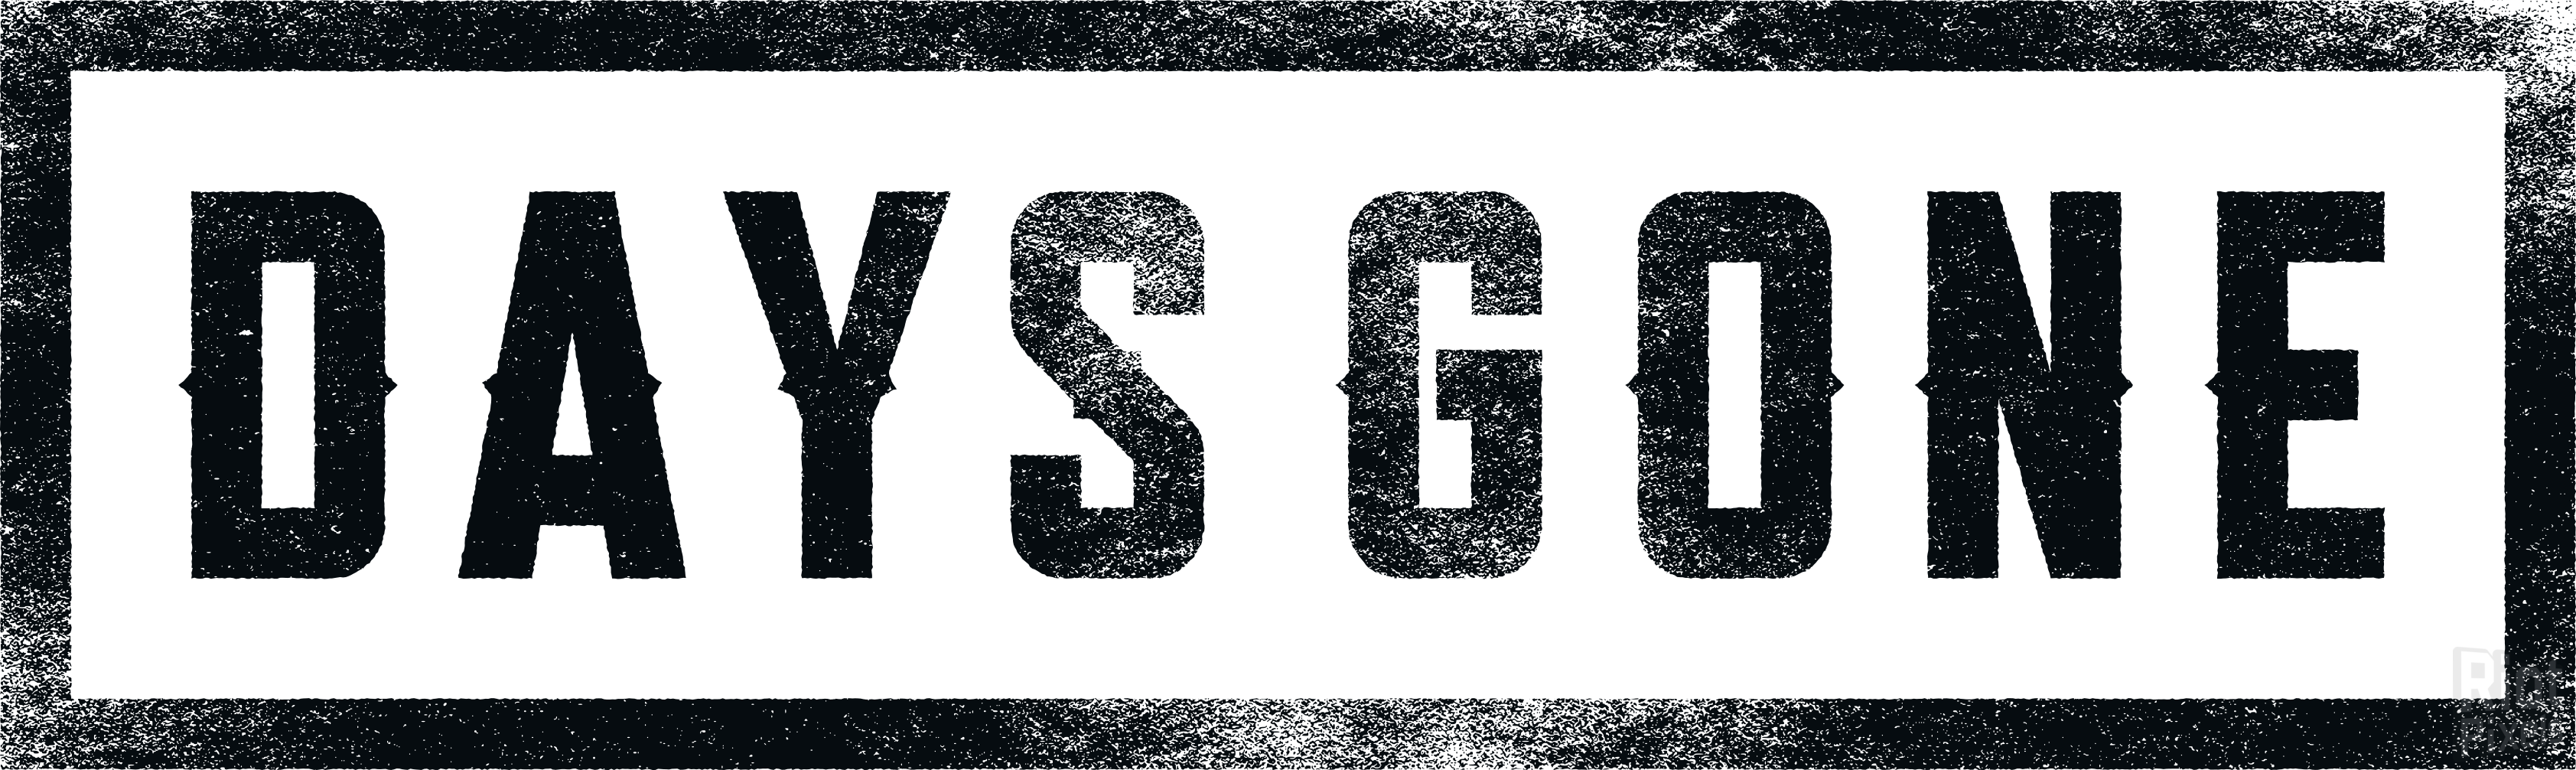 Days Gone Logo PNG Image.